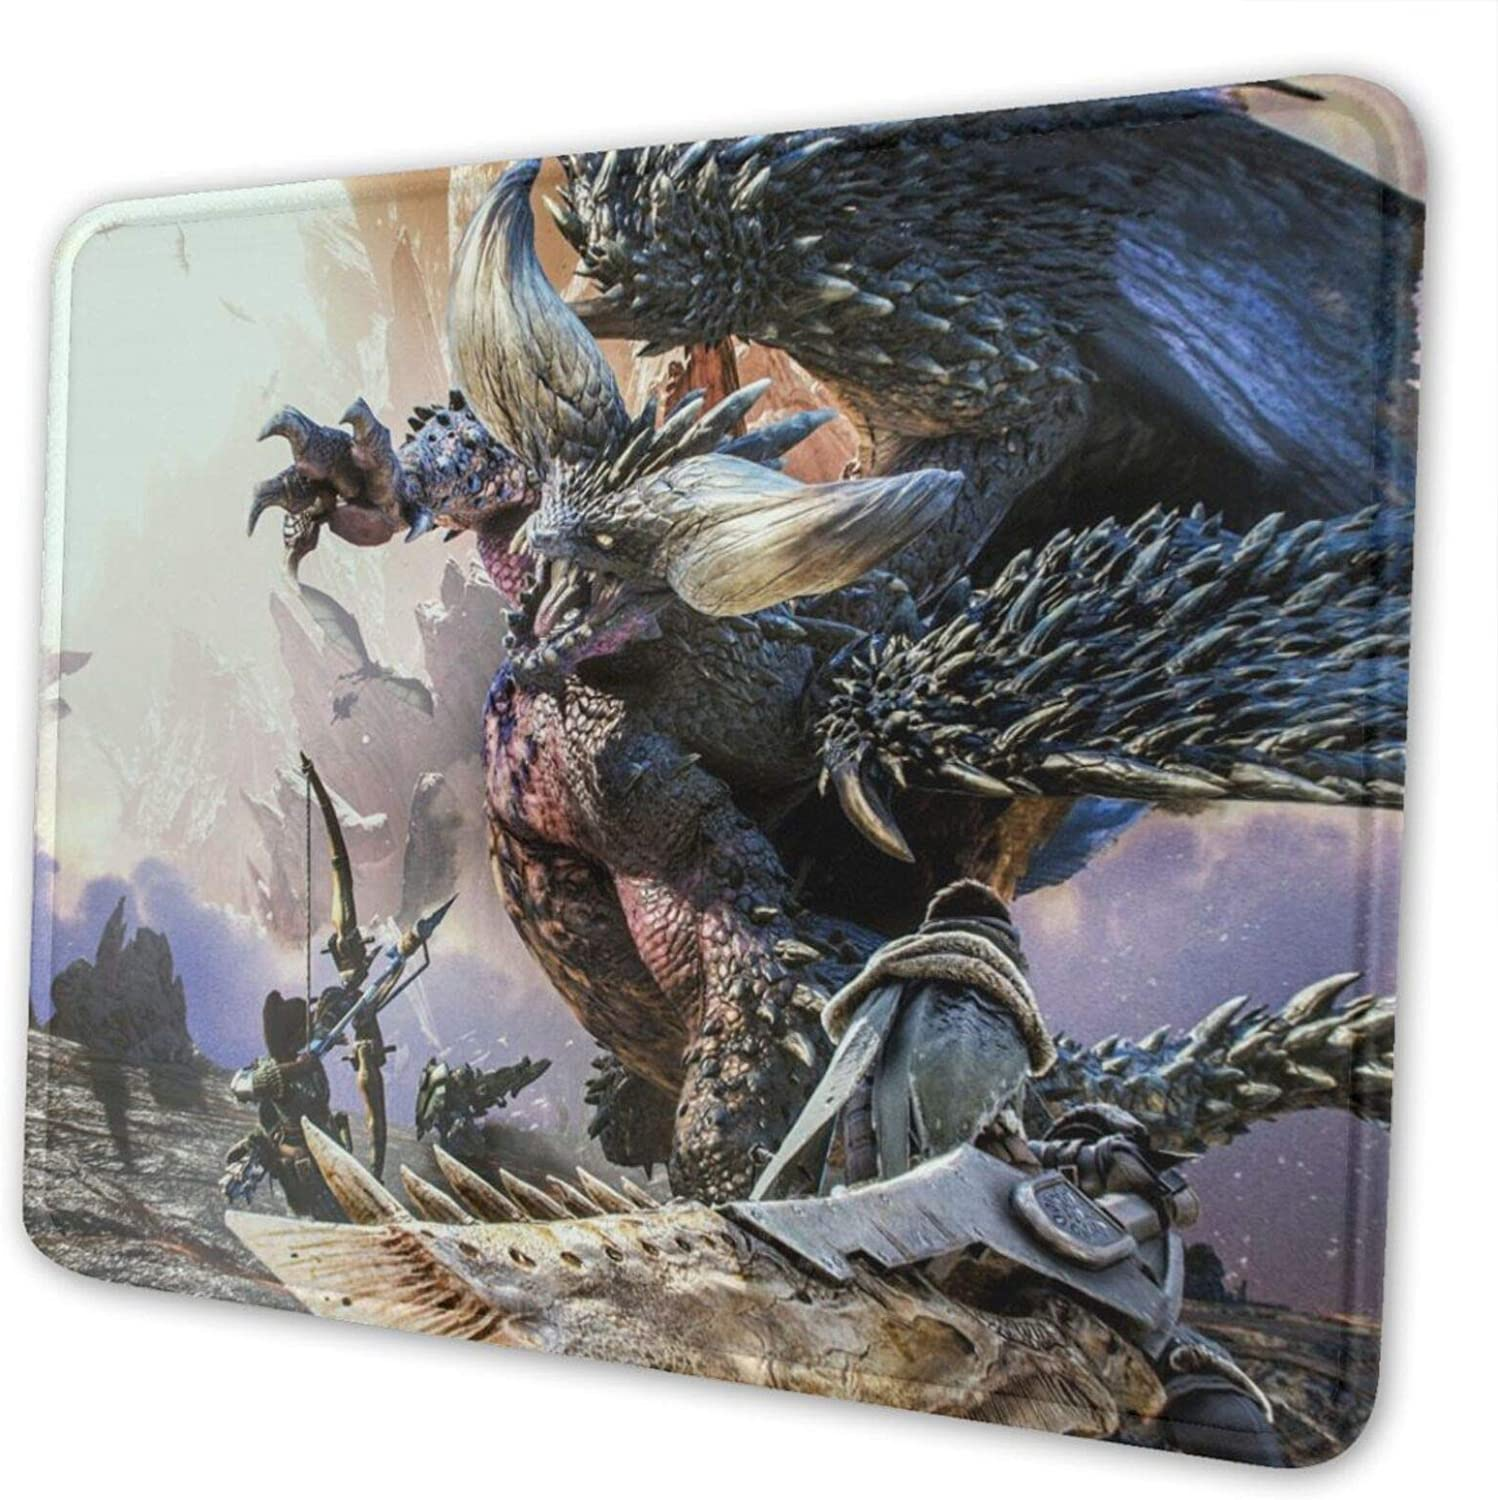 Monster Hunter Mouse Pad Gaming Computer Mat 10 X 12 inch Mousepad for Office Home Laptop PC